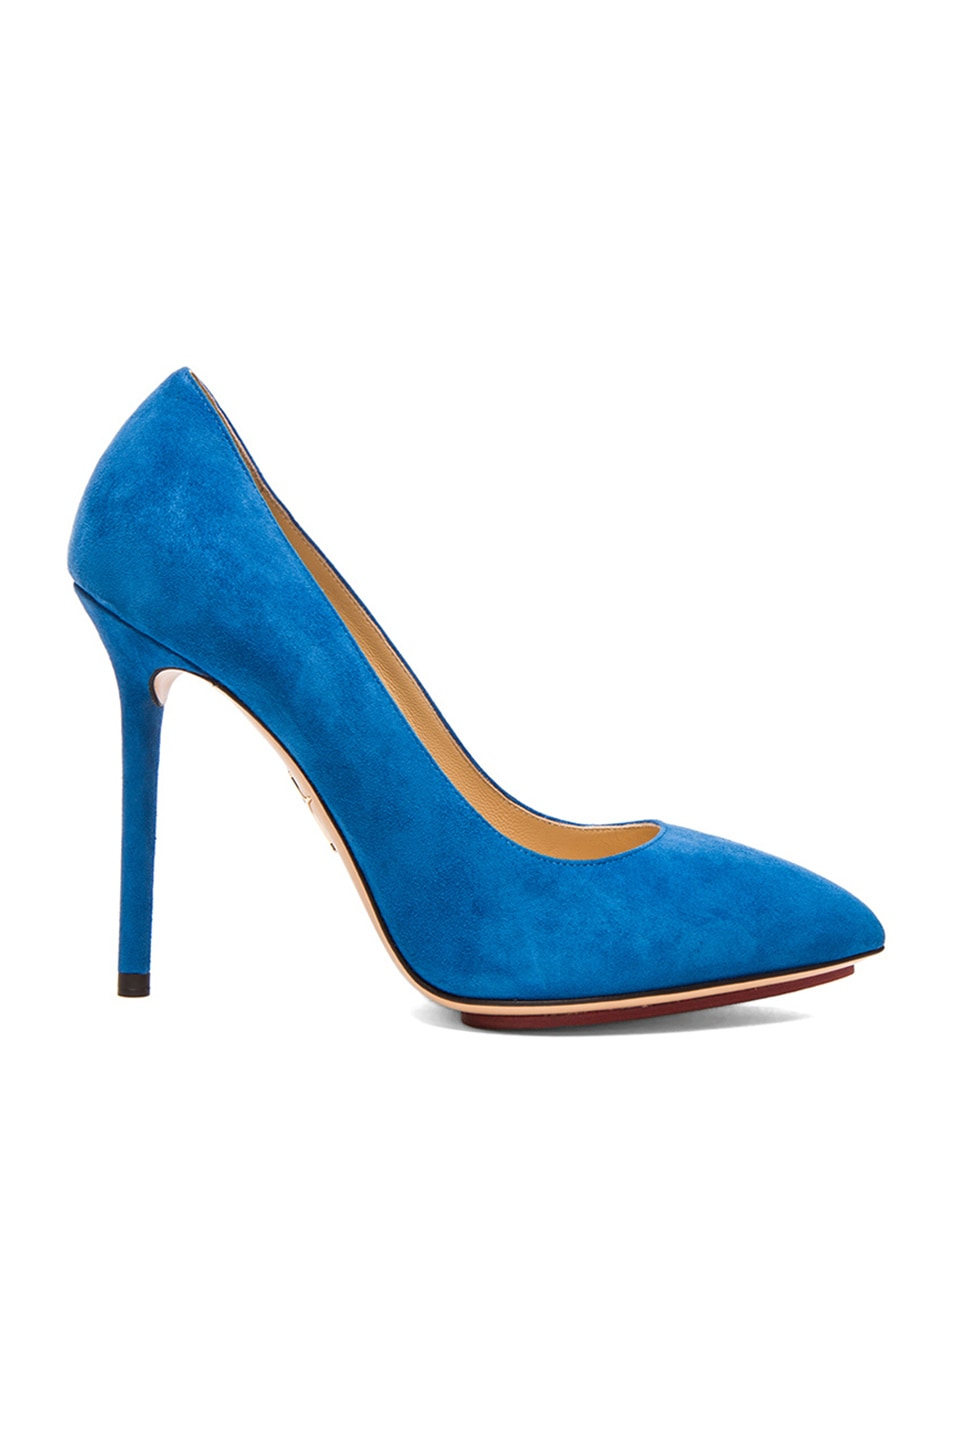 Image 1 of Charlotte Olympia Monroe Suede Pumps in Cobalt Blue